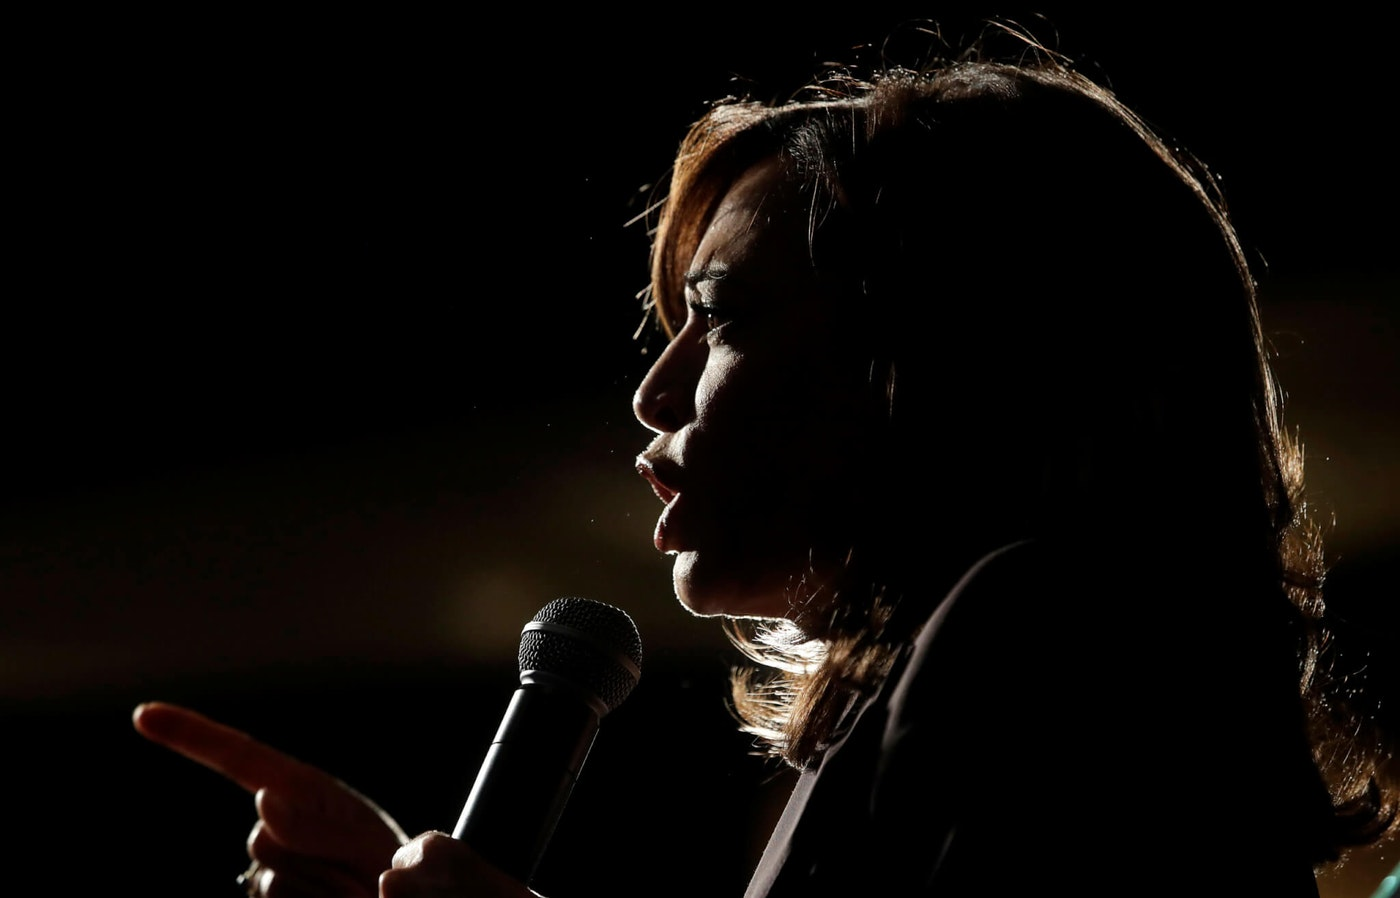 In this Saturday, June 1, 2019 file photo, ex-Democratic presidential candidate Sen. Kamala Harris, D-Calif., speaks at an SEIU event before the 2019 California Democratic Party State Organizing Convention in San Francisco. Harris is only the second Black woman to serve in the Senate, and in 2020, a prominent contender for the vice-presidential ticket. (AP Photo/Jeff Chiu)